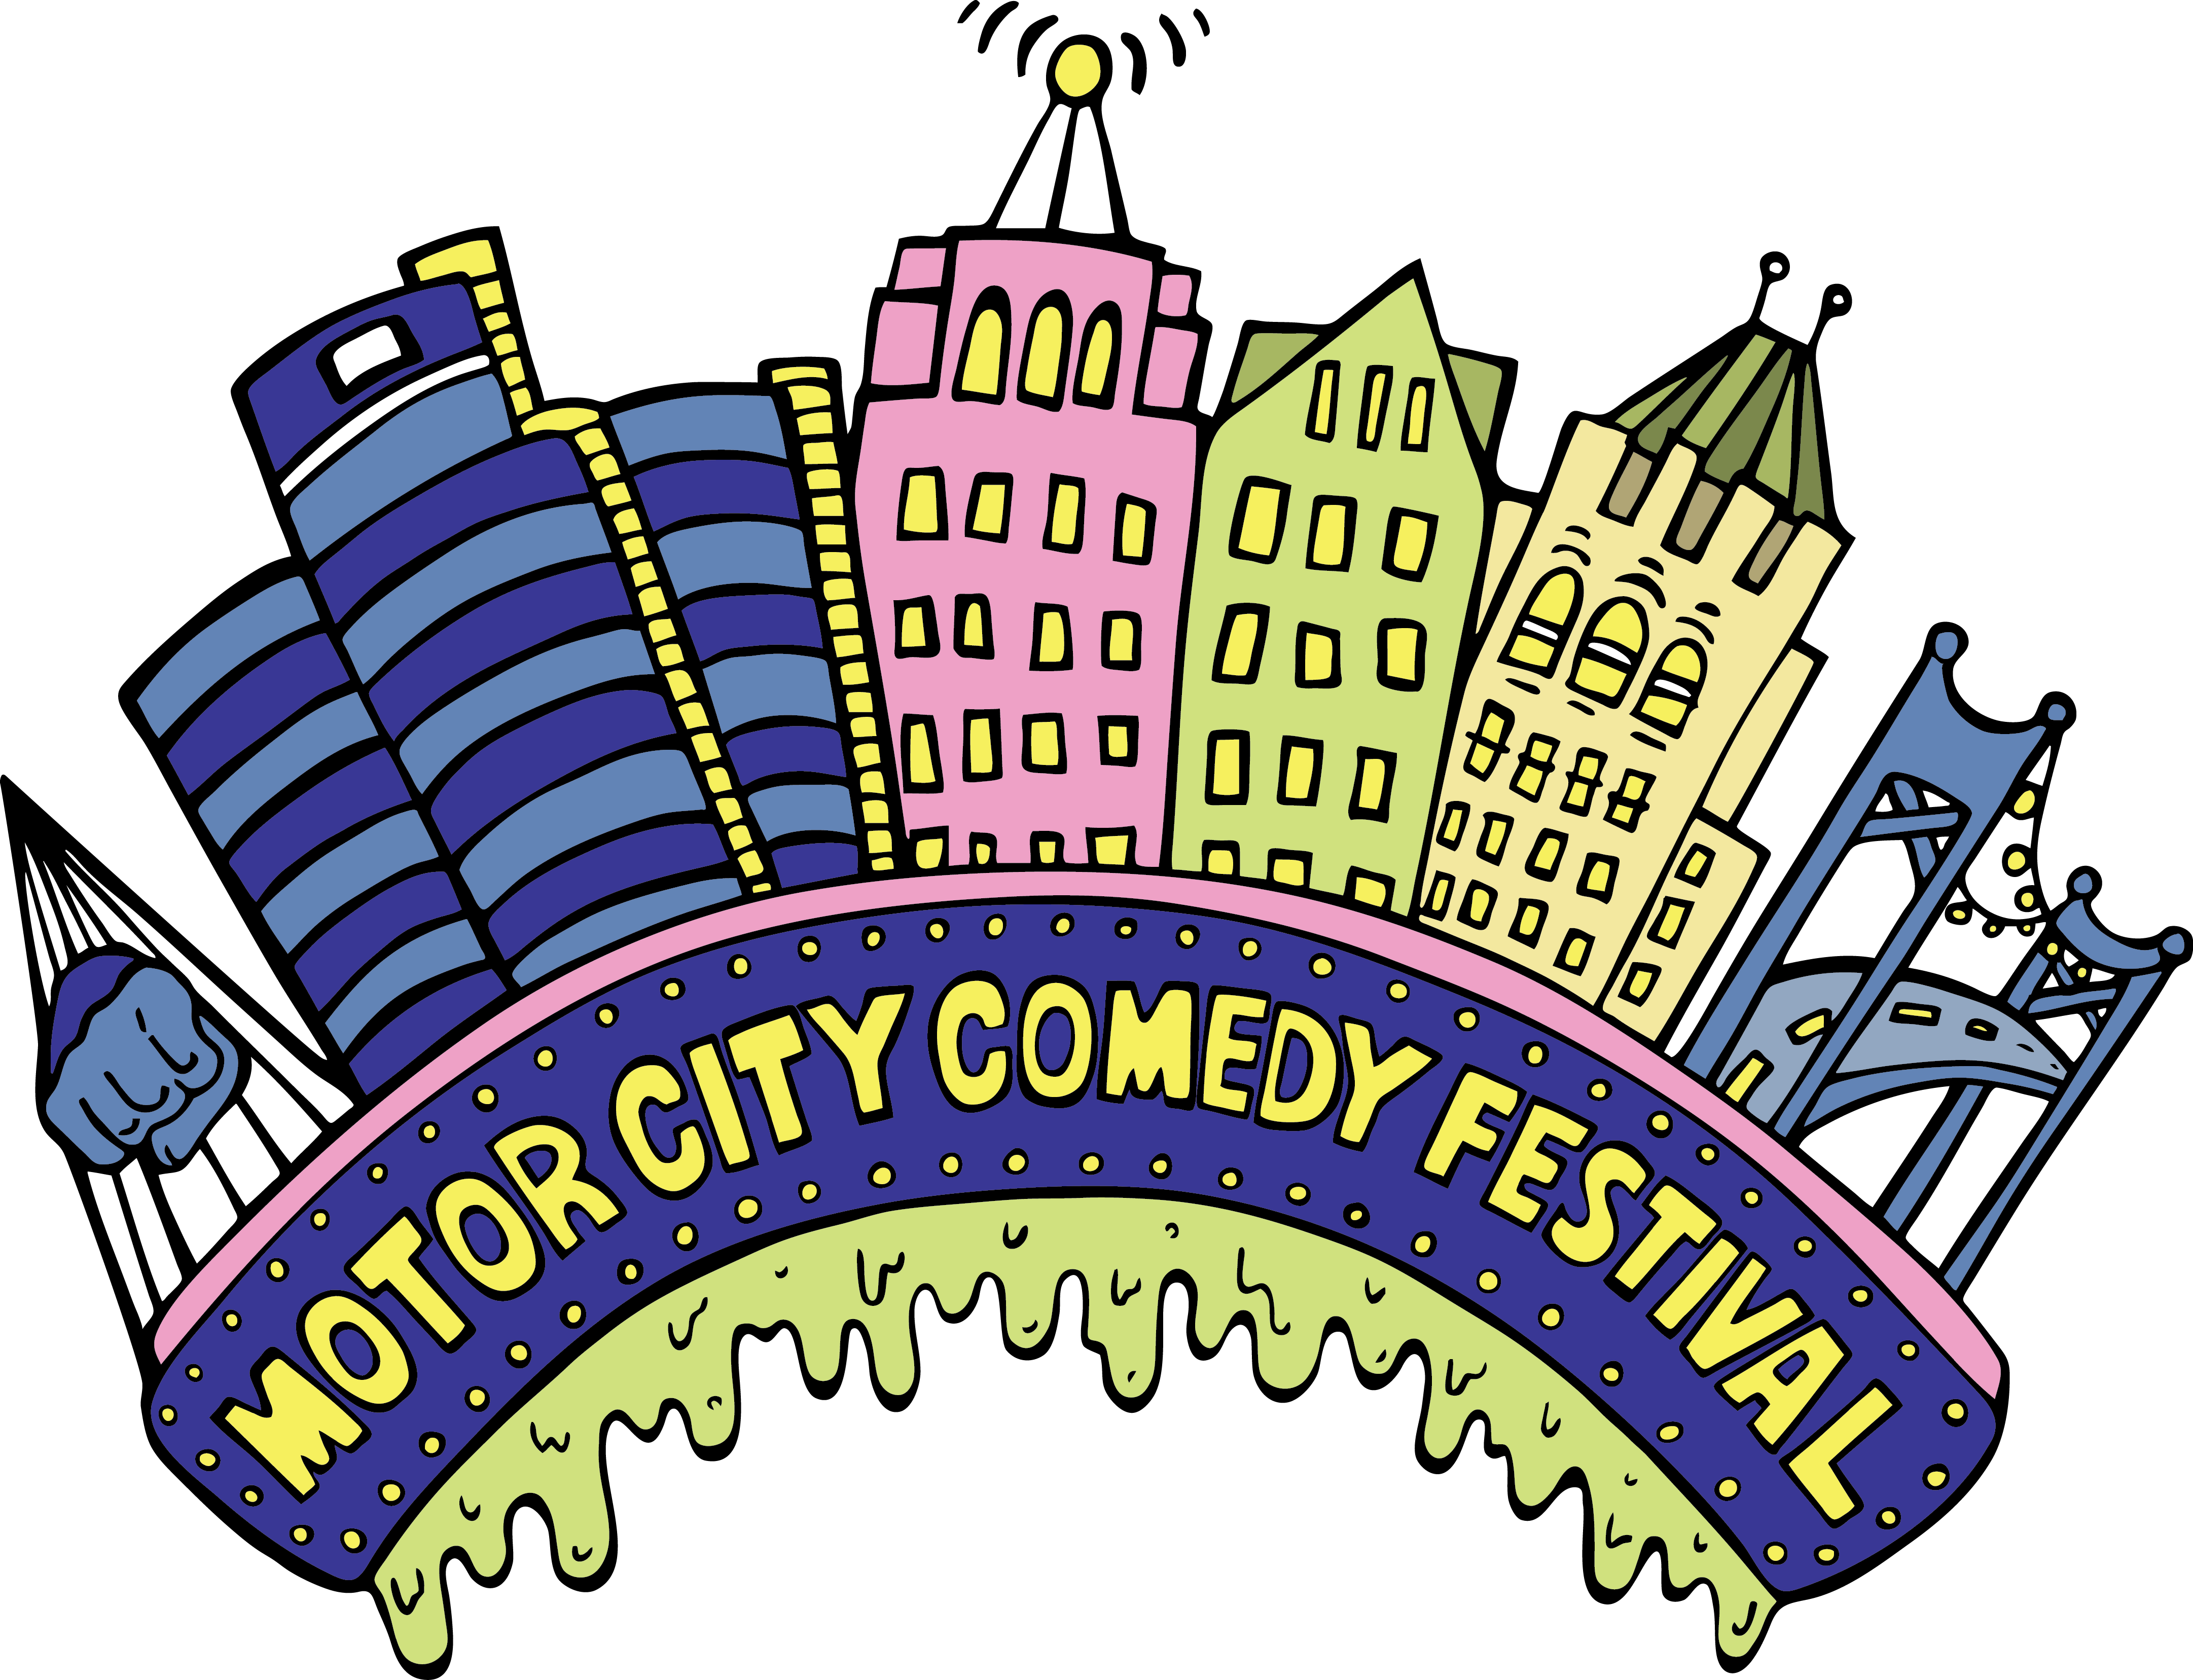 Motor City Comedy Festival – Motor City Comedy Festival image freeuse download